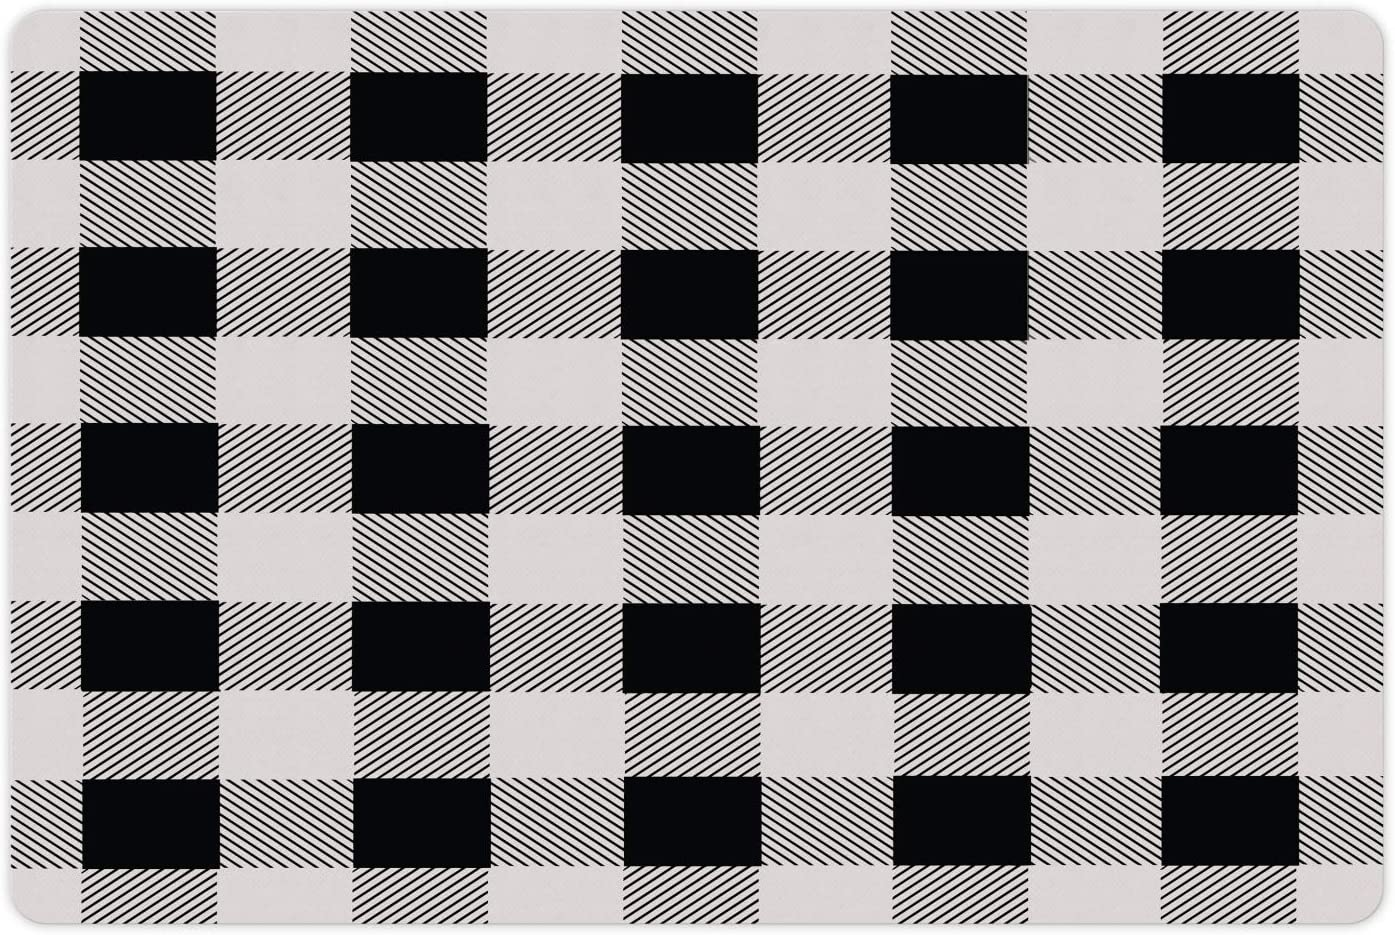 Lunarable Plaid Pet Mat for Food and Water, Monochrome Traditional Lumberjack Pattern Repating Checkered Squares Design, Non-Slip Rubber Mat for Dogs and Cats, 18